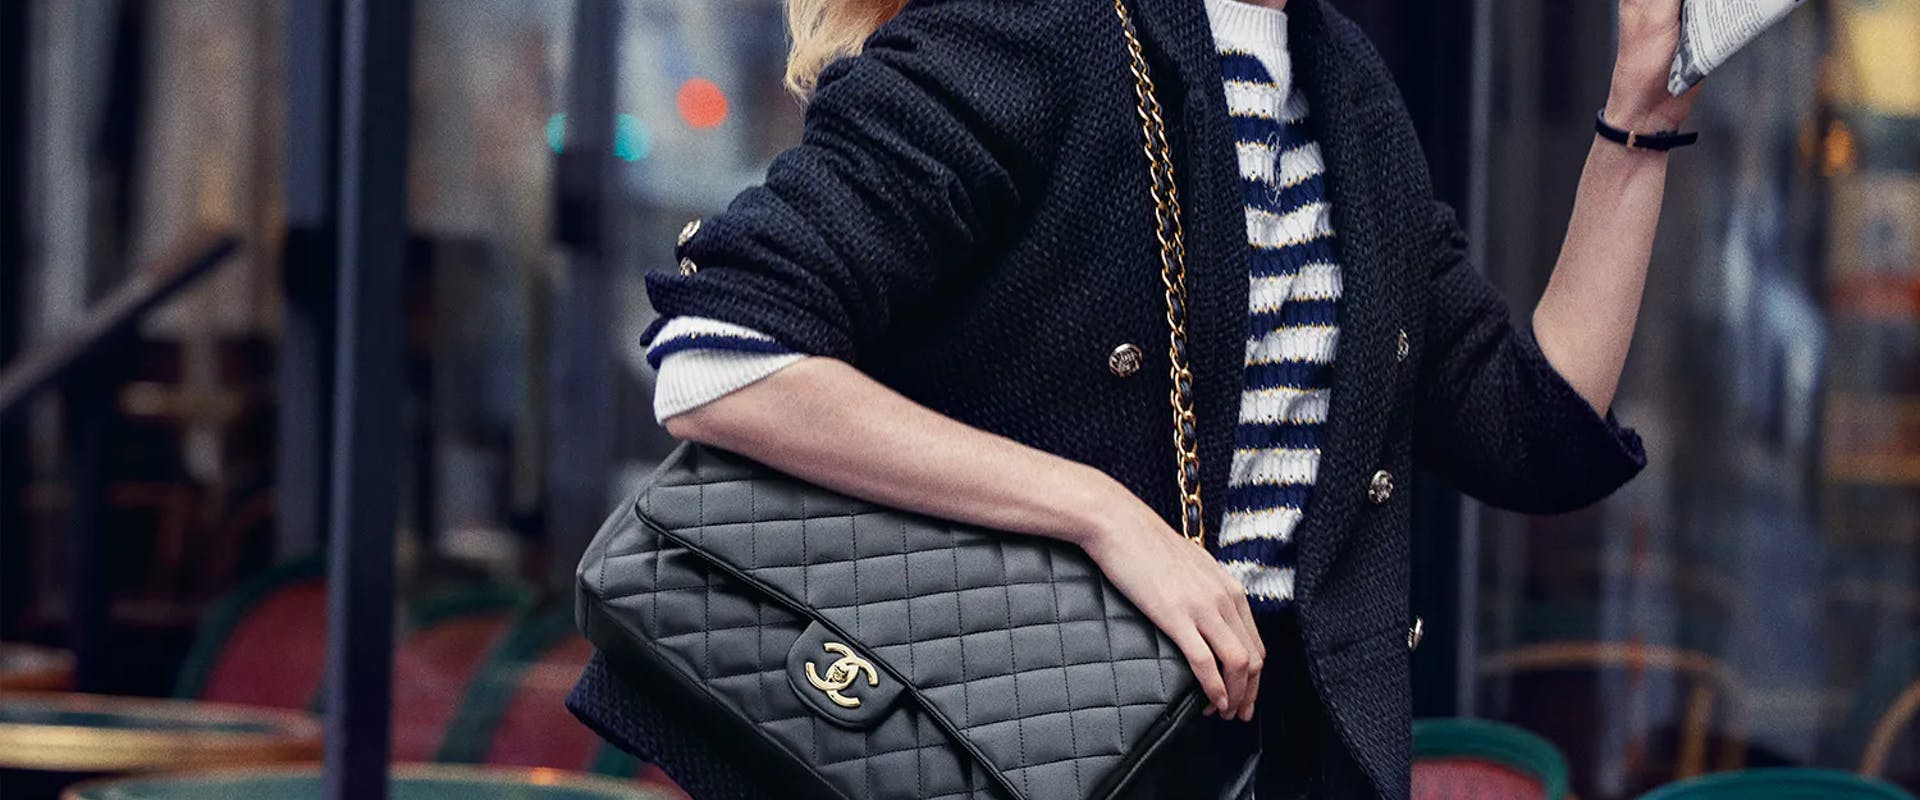 Sofia Coppola Brings an Icon to the Streets in Chanel's Latest Bag Campaign